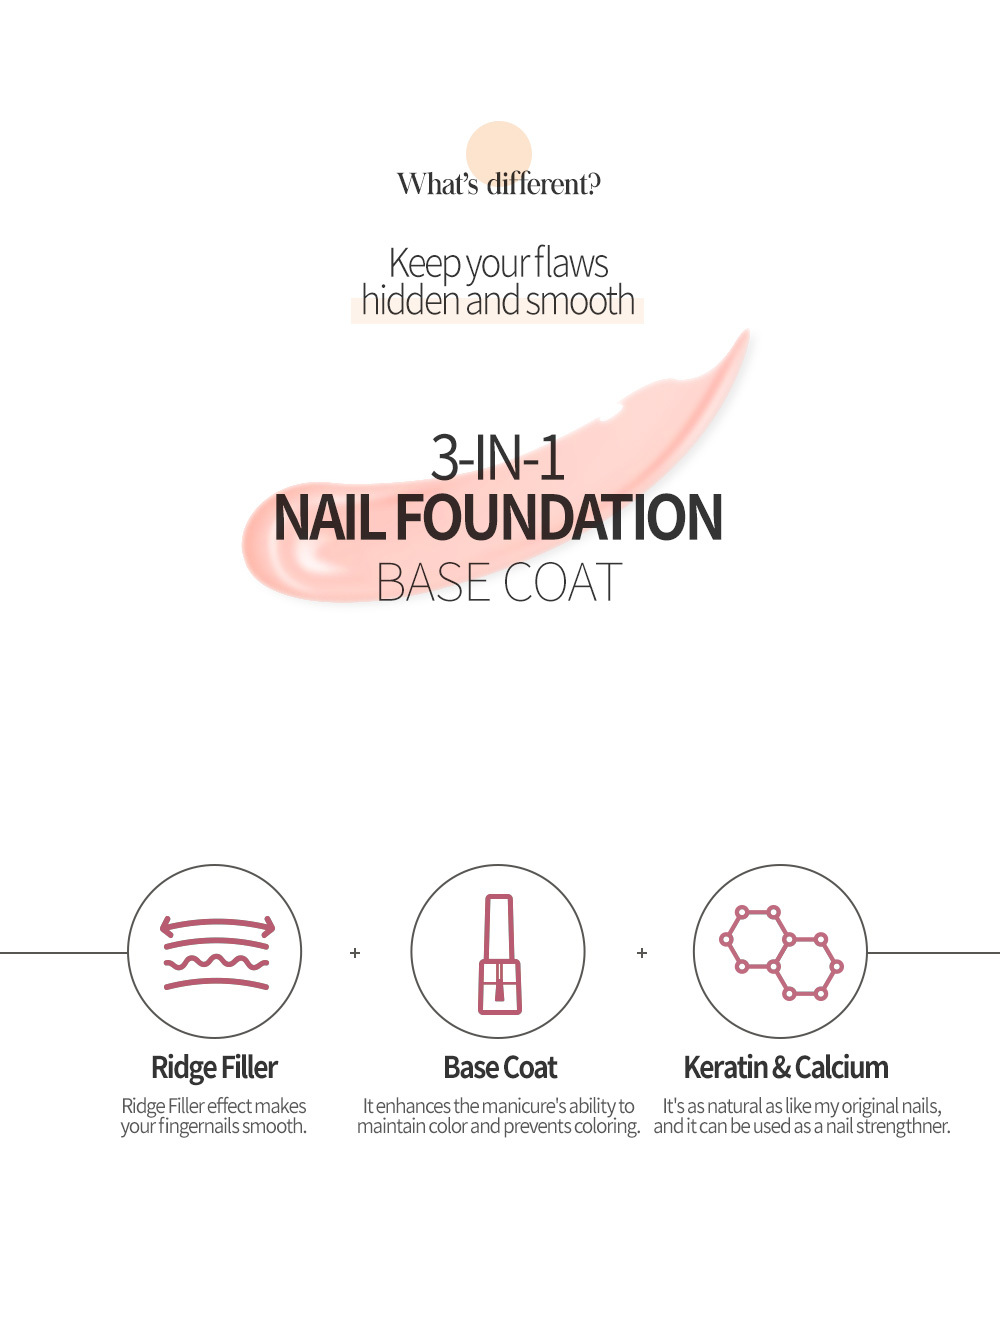 Feature of 3-in-1 Nail Foundation